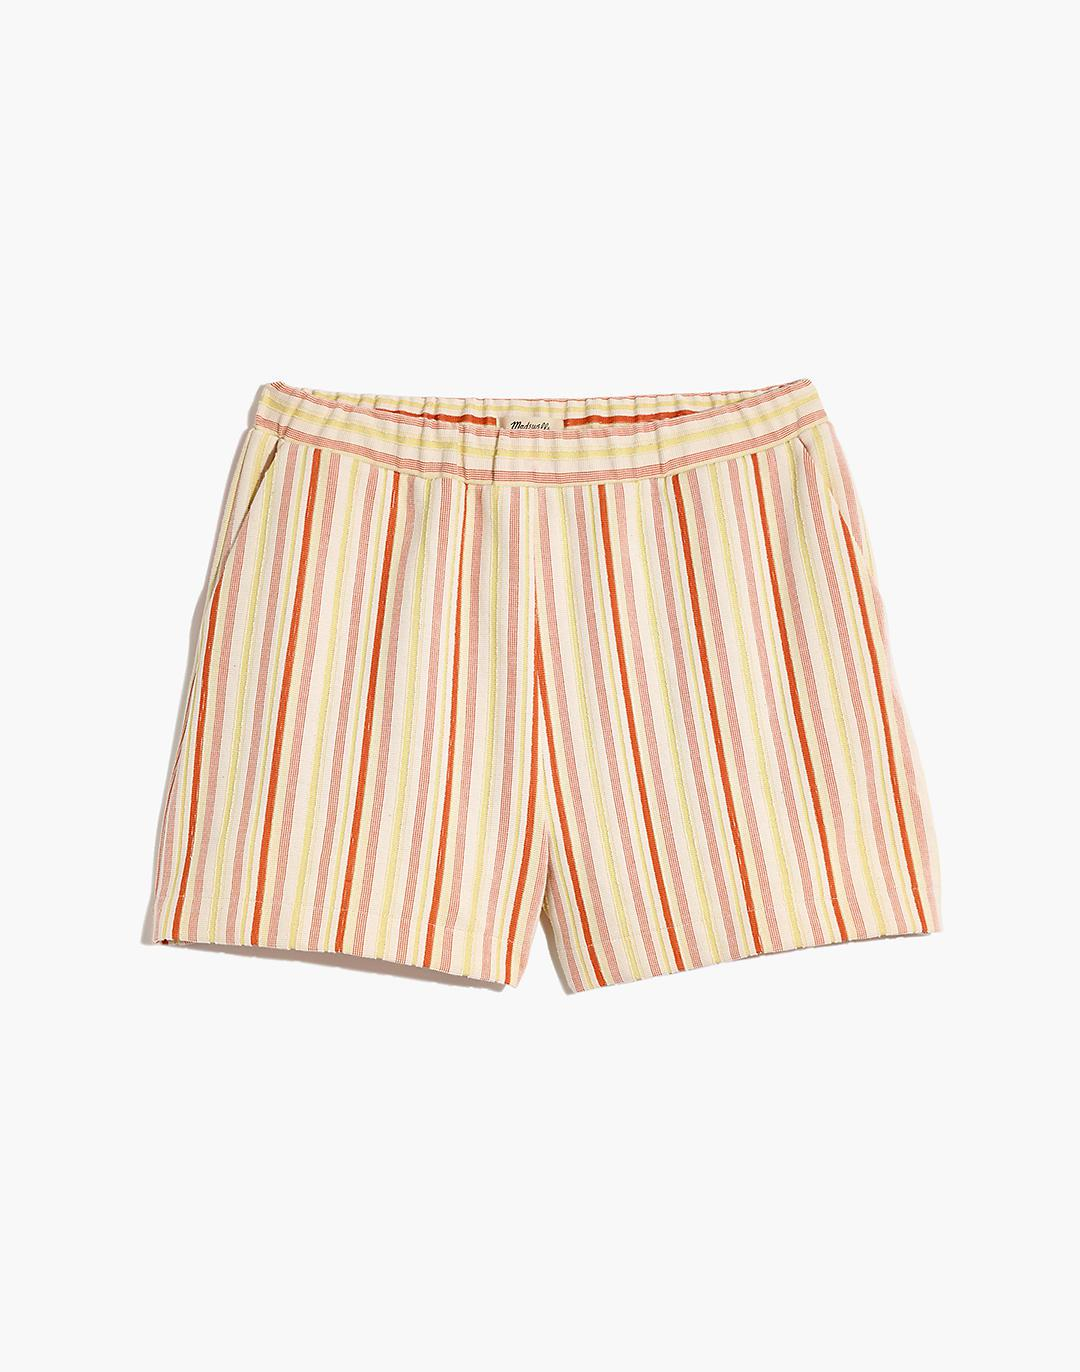 Textural Knit High-Rise Pleated Shorts in Stripe 3